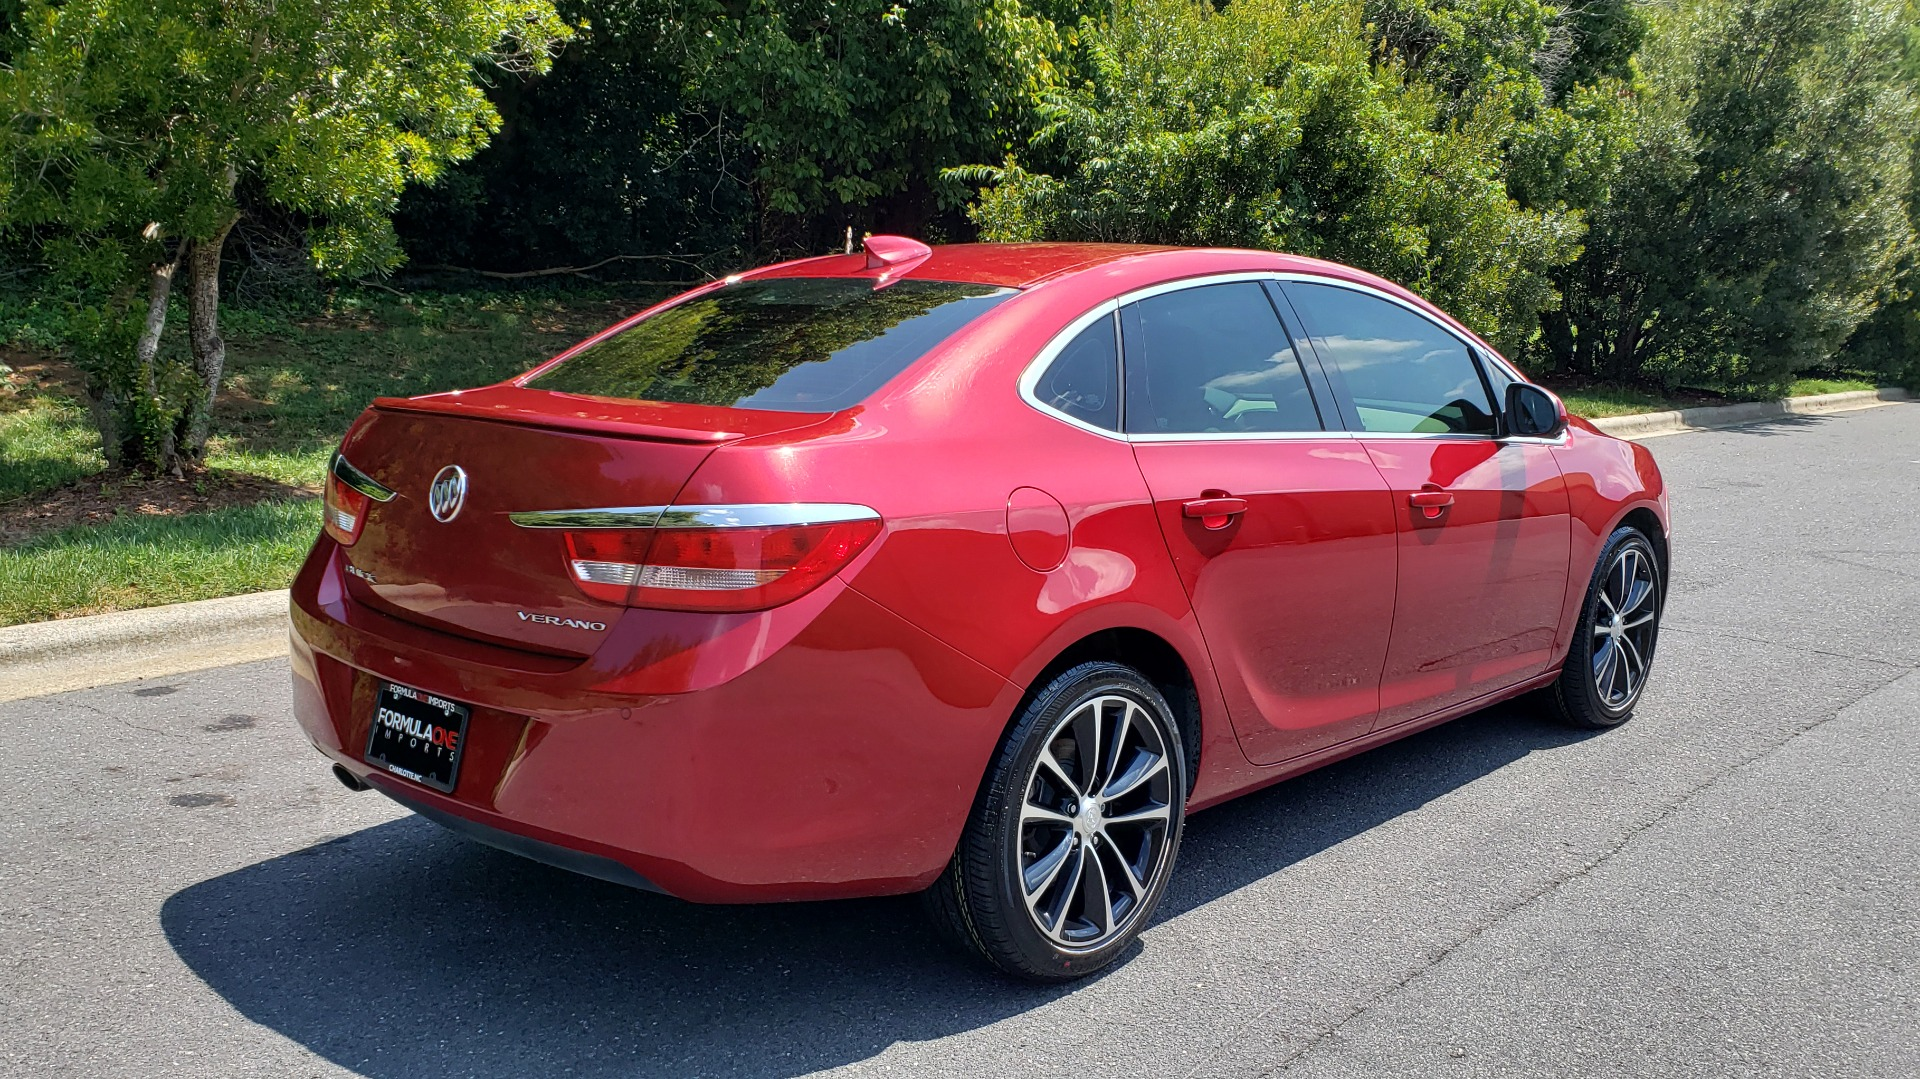 Used 2016 Buick VERANO SPORT TOURING / SUNROOF / HTD STS / 18IN WHEELS / REARVIEW for sale Sold at Formula Imports in Charlotte NC 28227 7